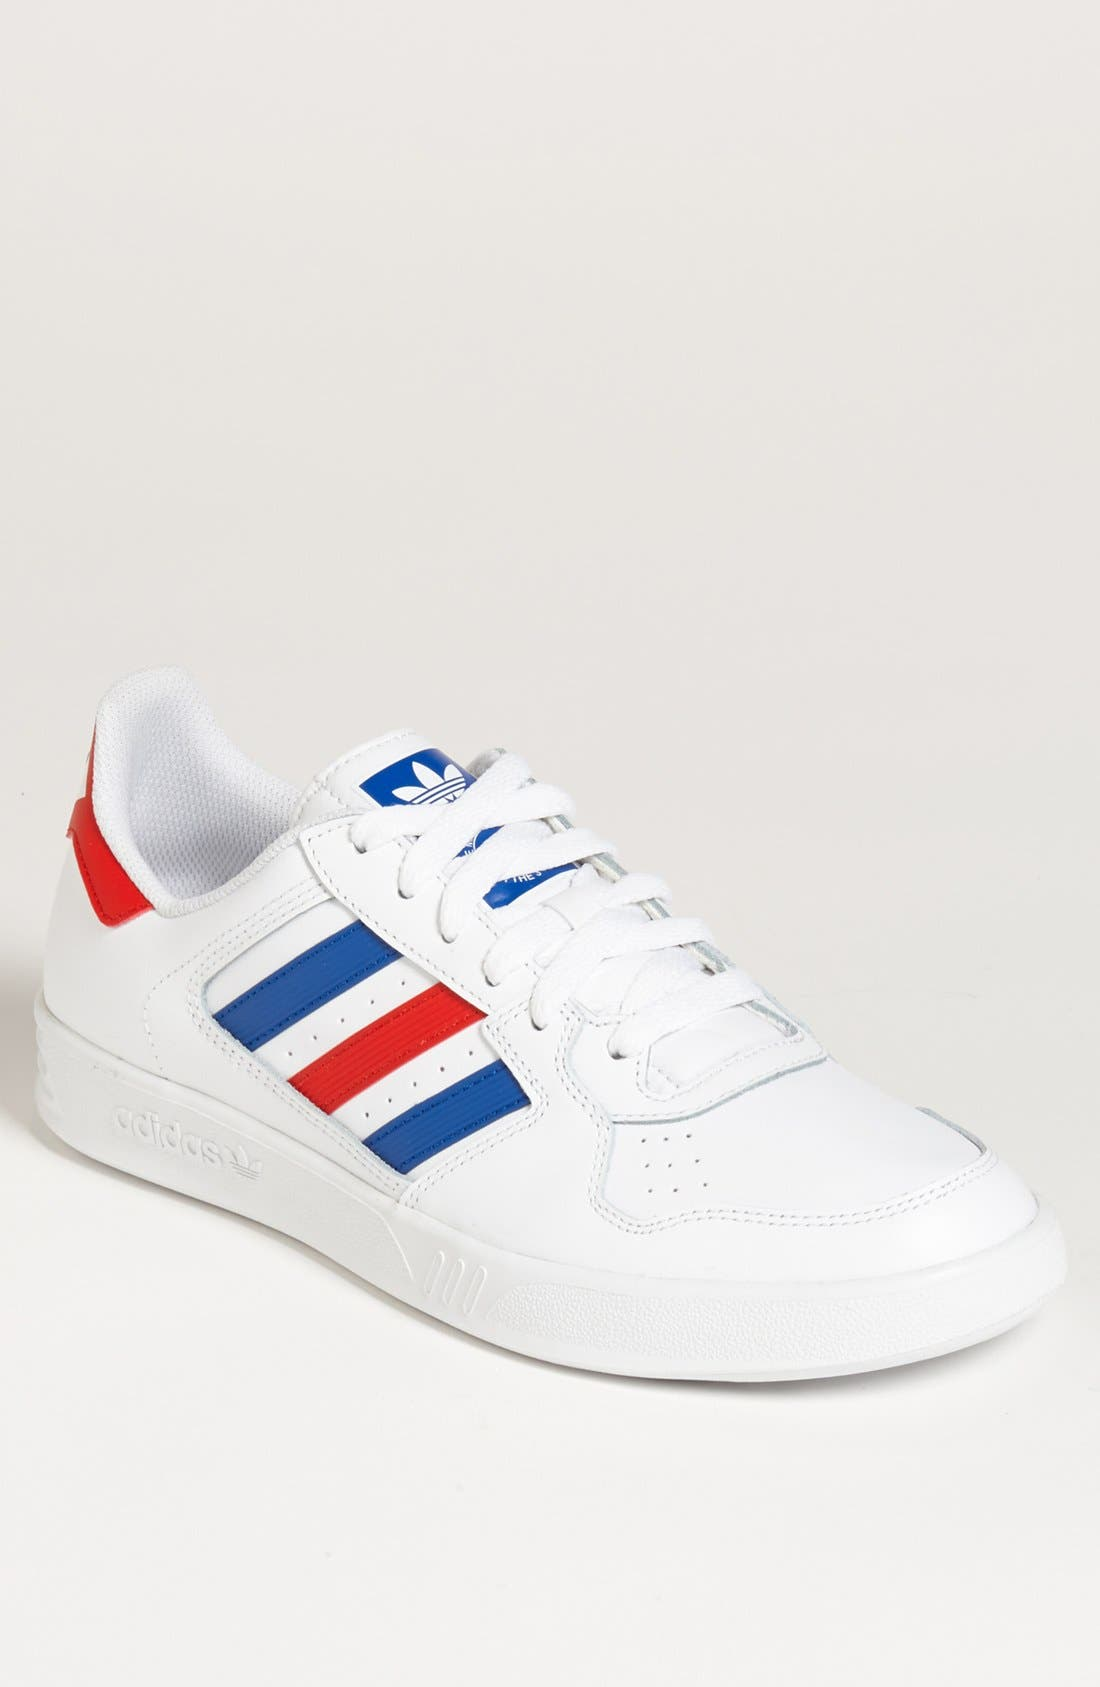 Alternate Image 1 Selected - adidas 'Tennis Court Top' Sneaker